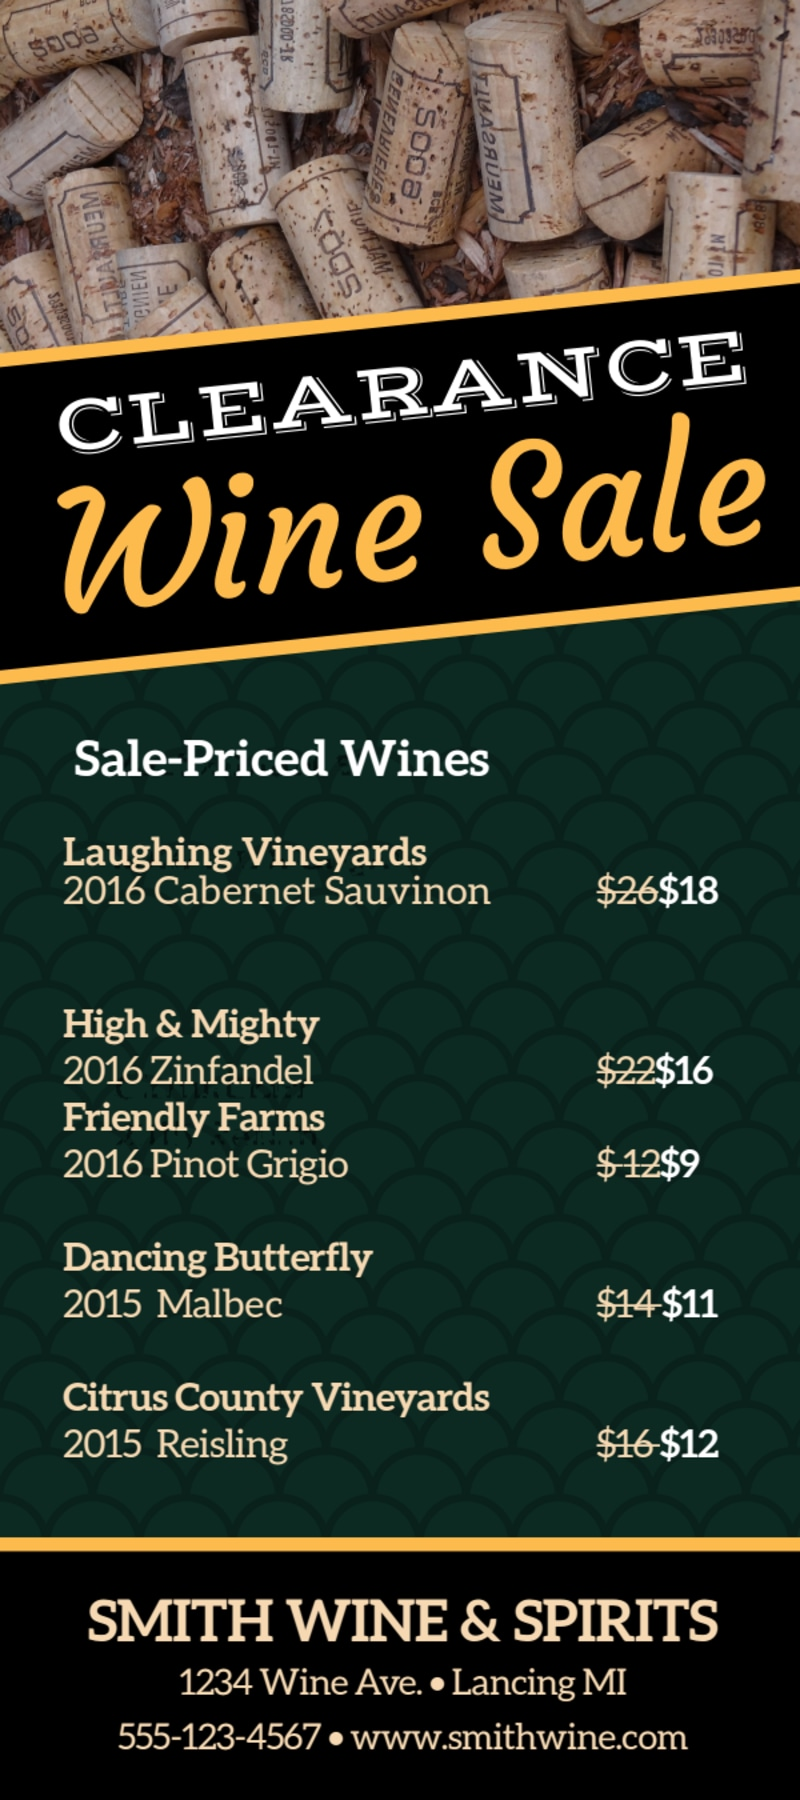 Clearance Wine Sale Flyer Template Preview 3